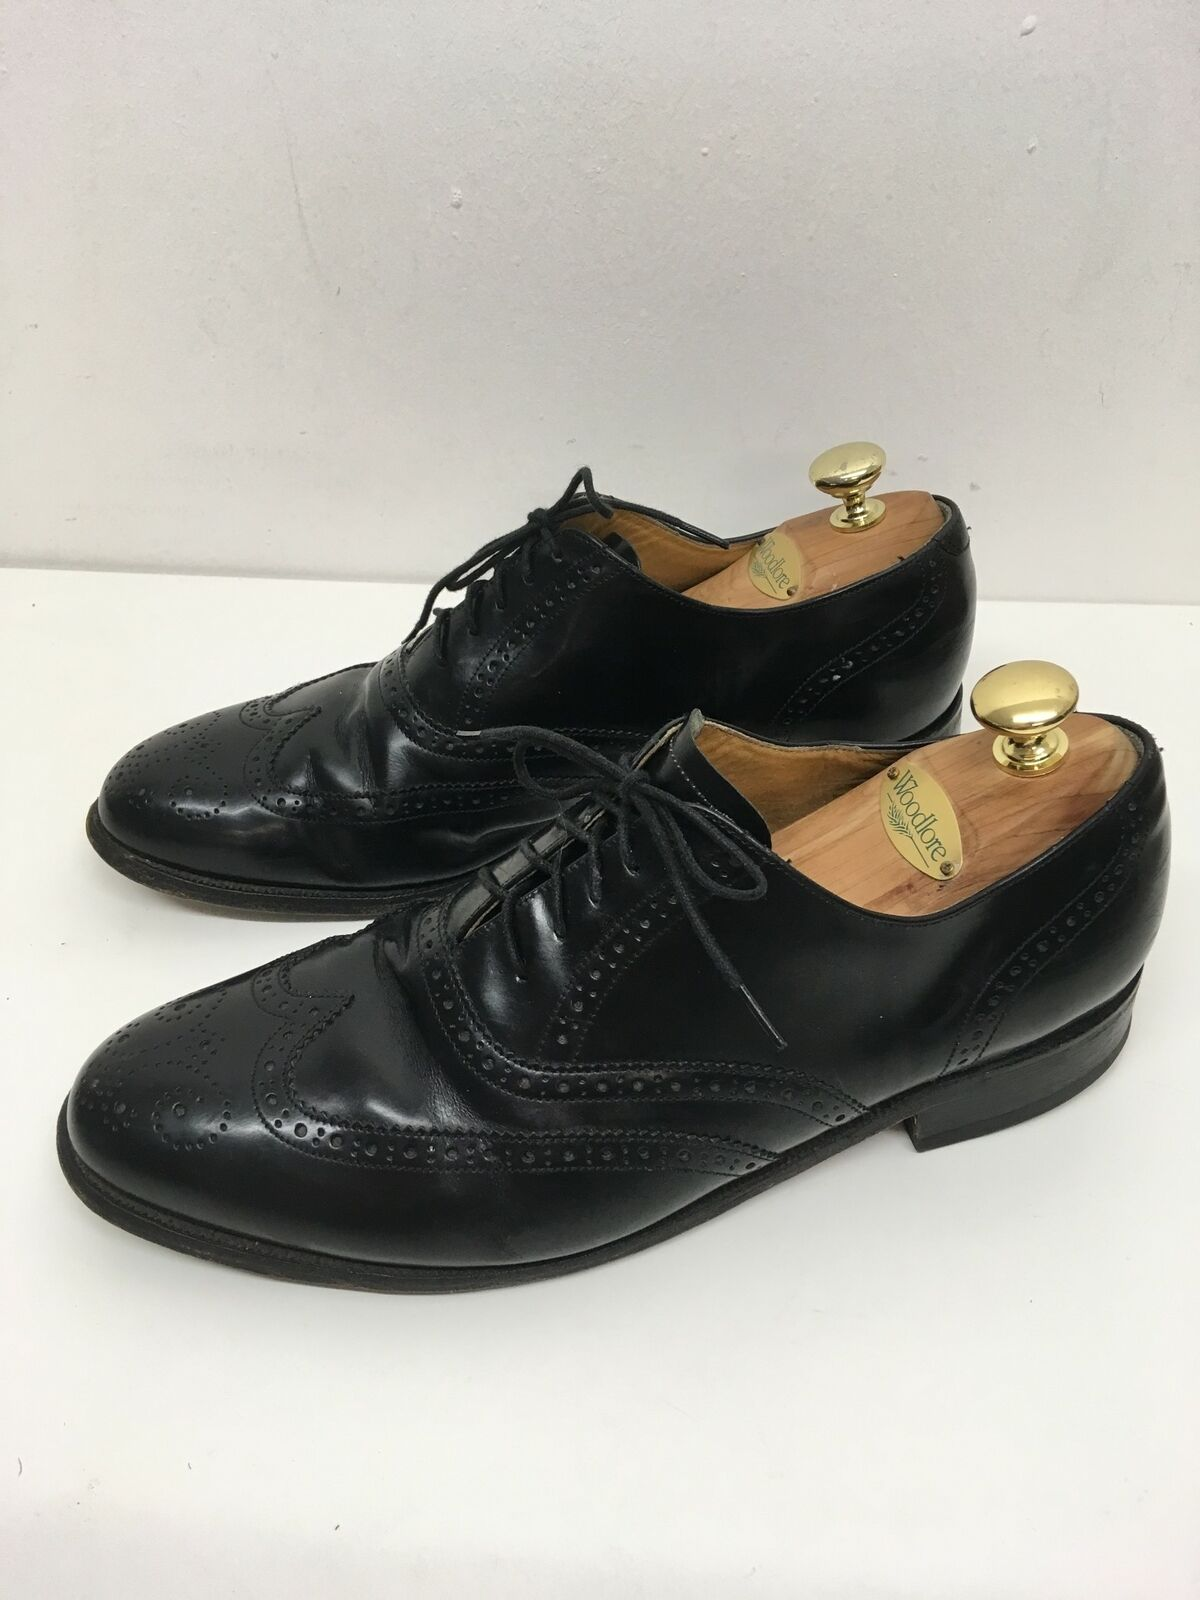 MENS BARKER schwarz LEATHER LACE LACE LACE UP BROGUES SMART FORMAL WORK schuhe UK 8  813b9f